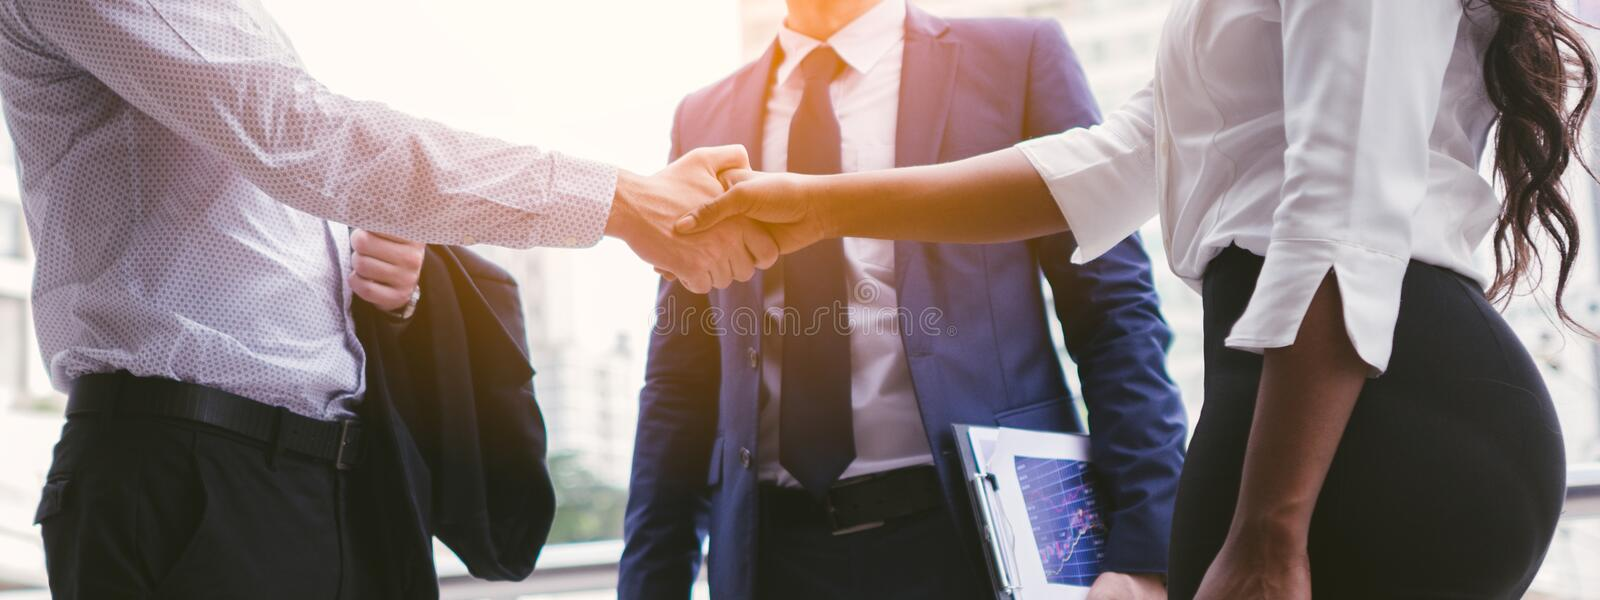 Handshake of business People deal business. royalty free stock photography